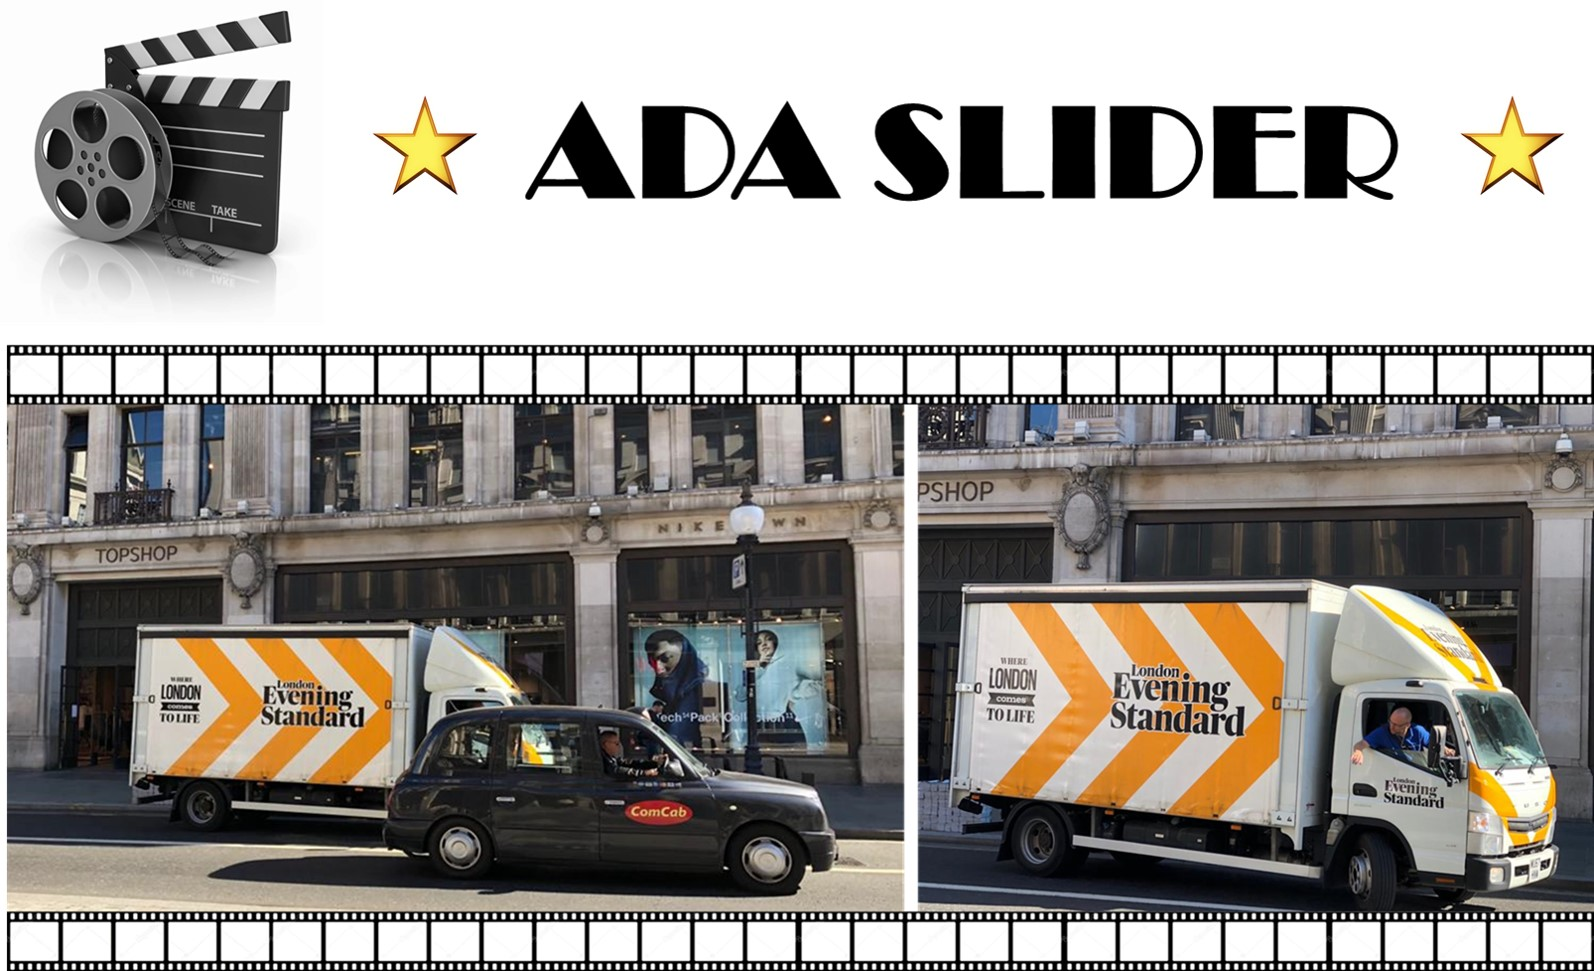 Our ADA-SLIDER continues with its UNSTOPPABLE EXPANSION